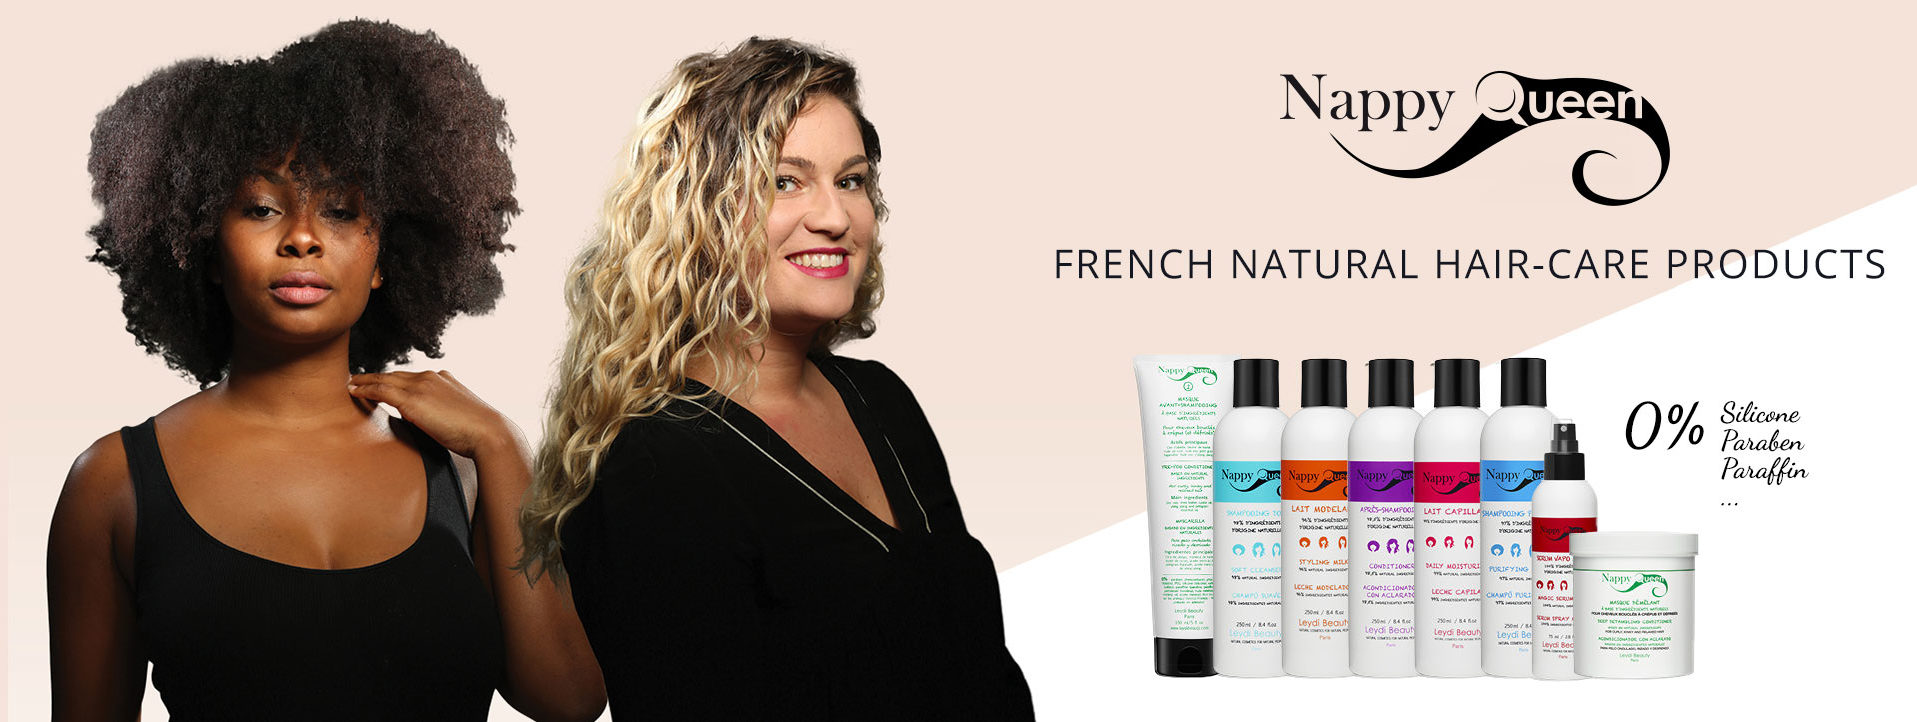 nappyqueen-french-natural-hair-care-product